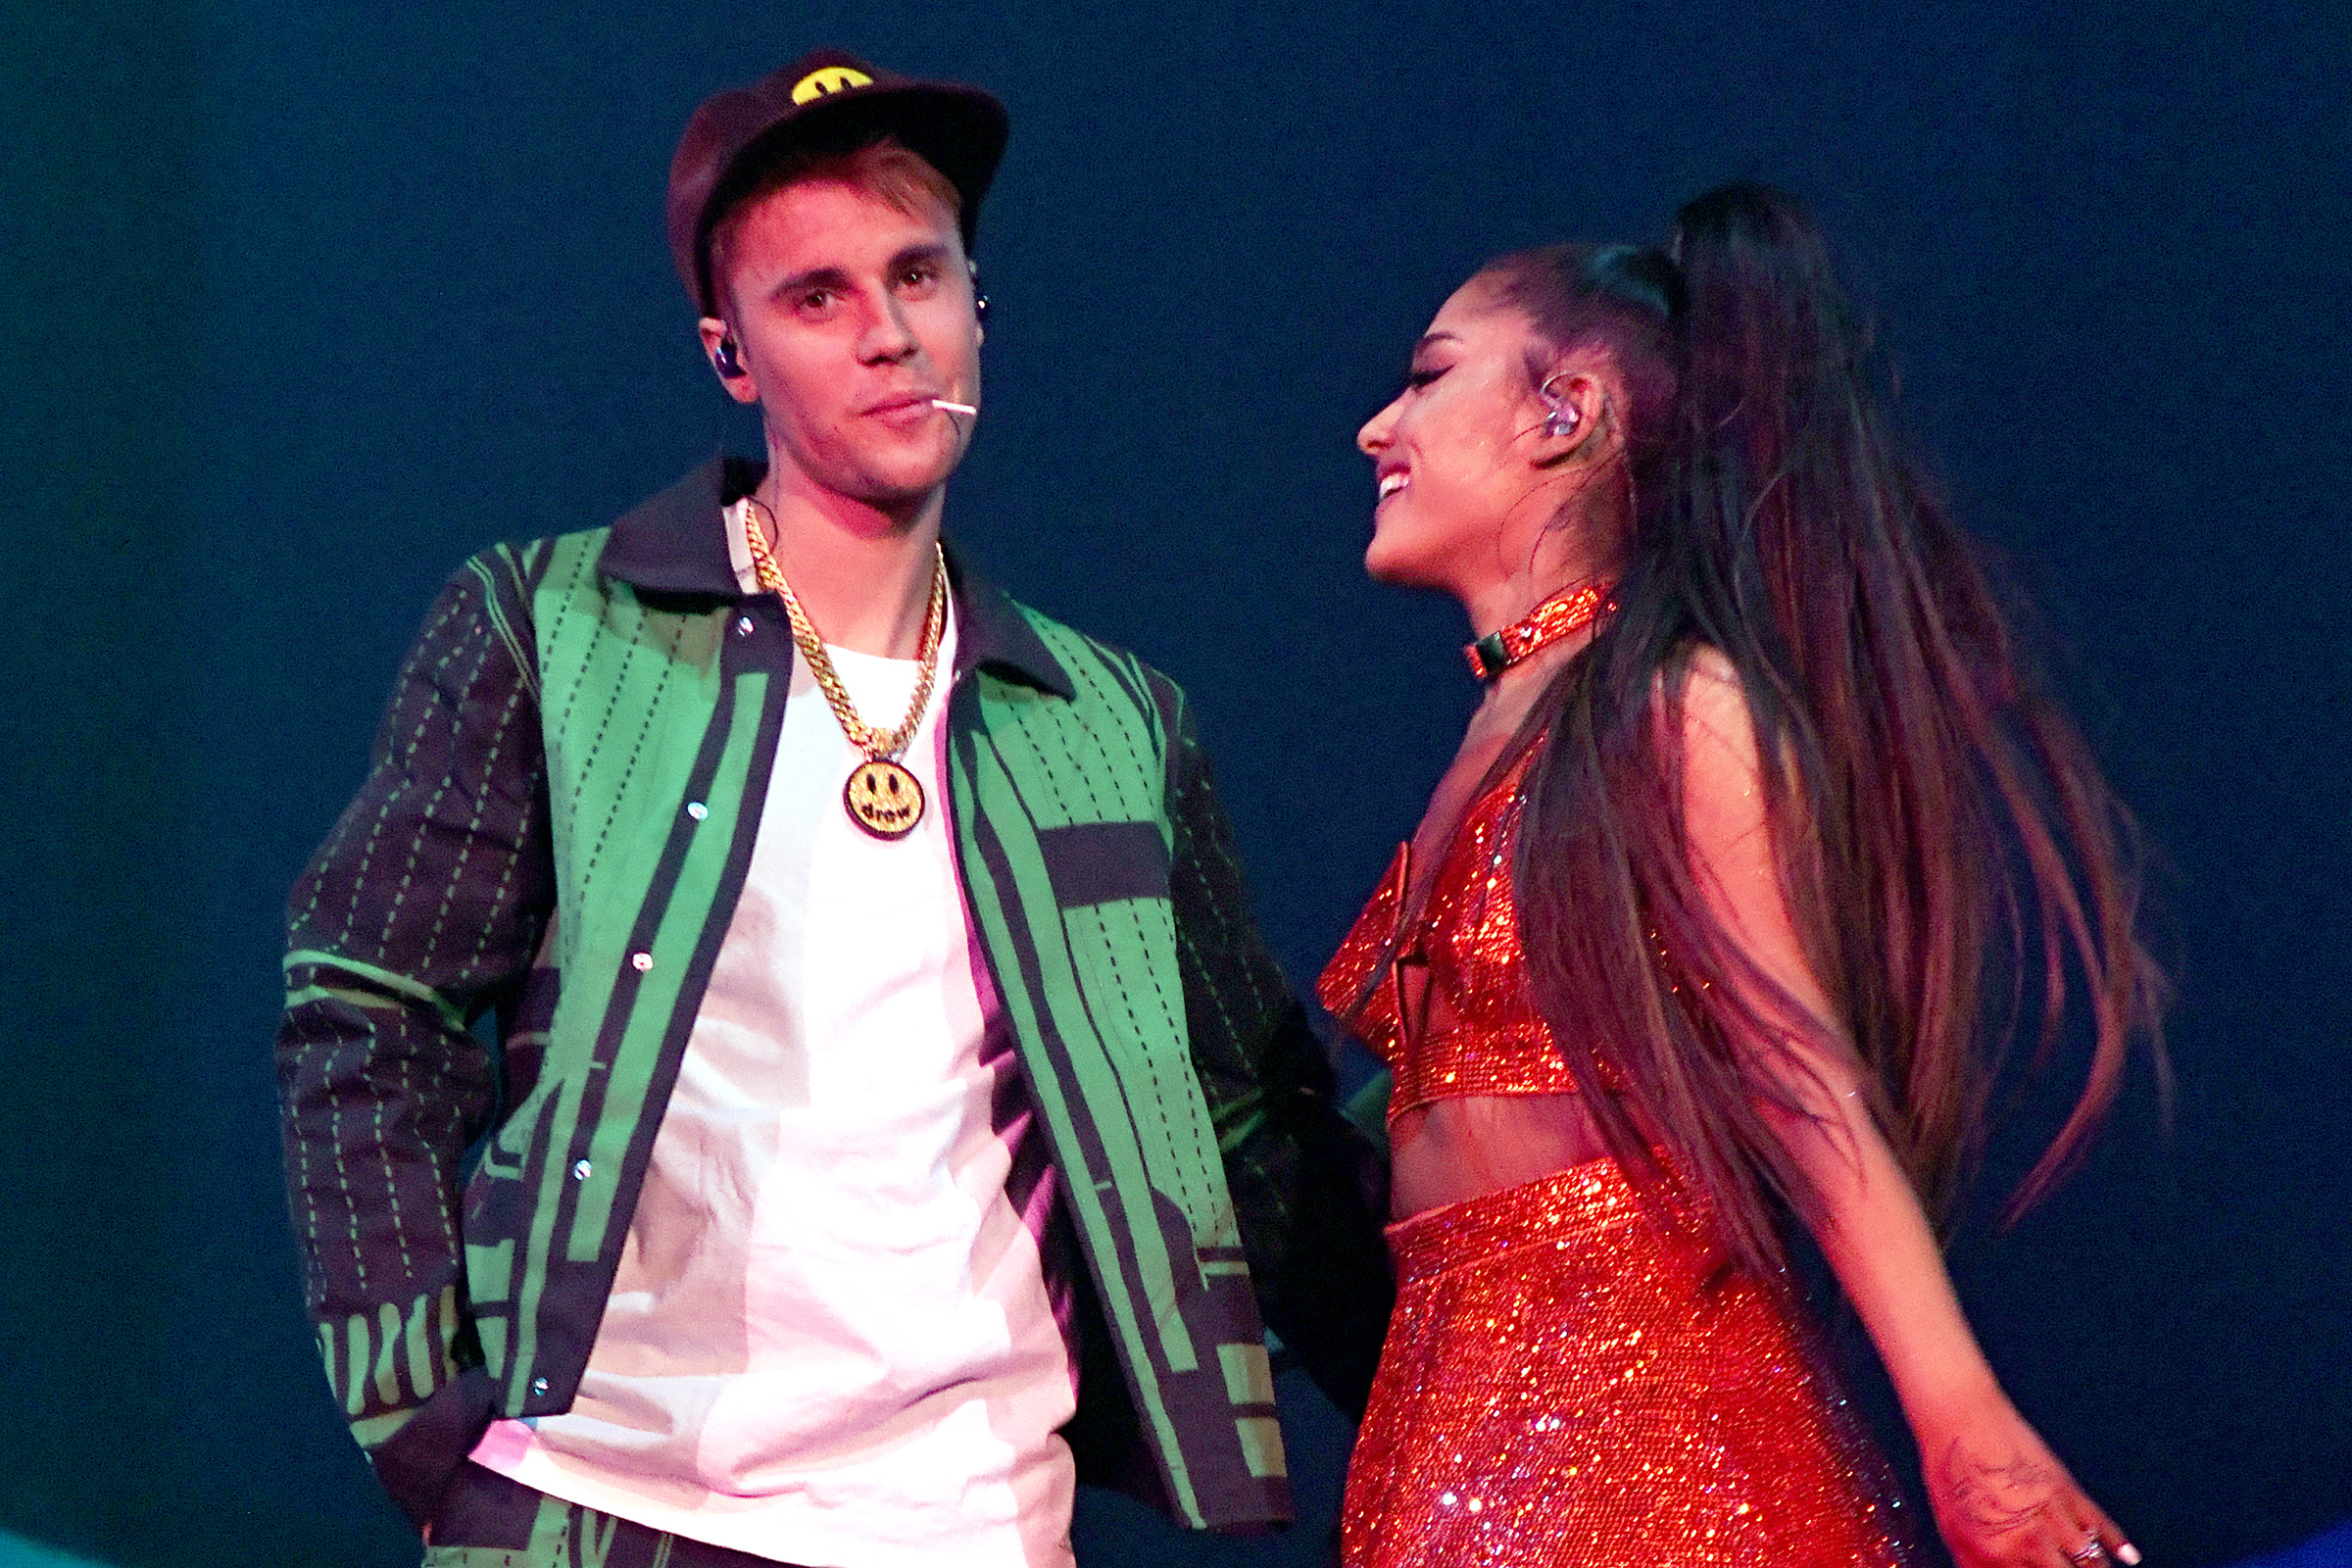 Justin Bieber Performs 'Sorry' at Ariana Grande's Coachella Set, Teases Upcoming Album